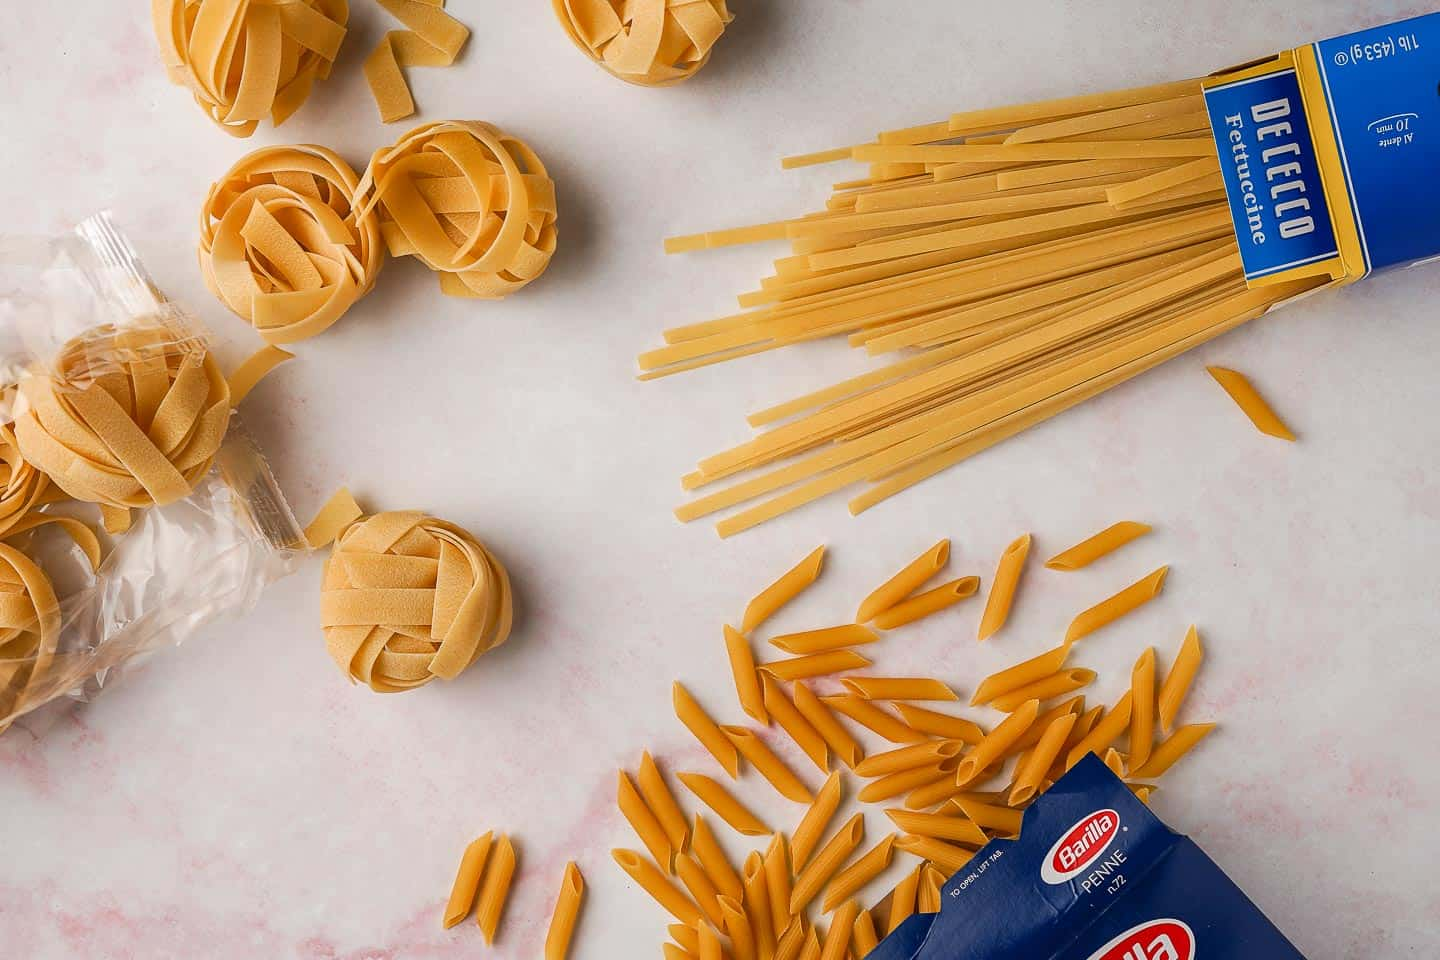 Pappardelle, Fettuccine and Penne Pasta